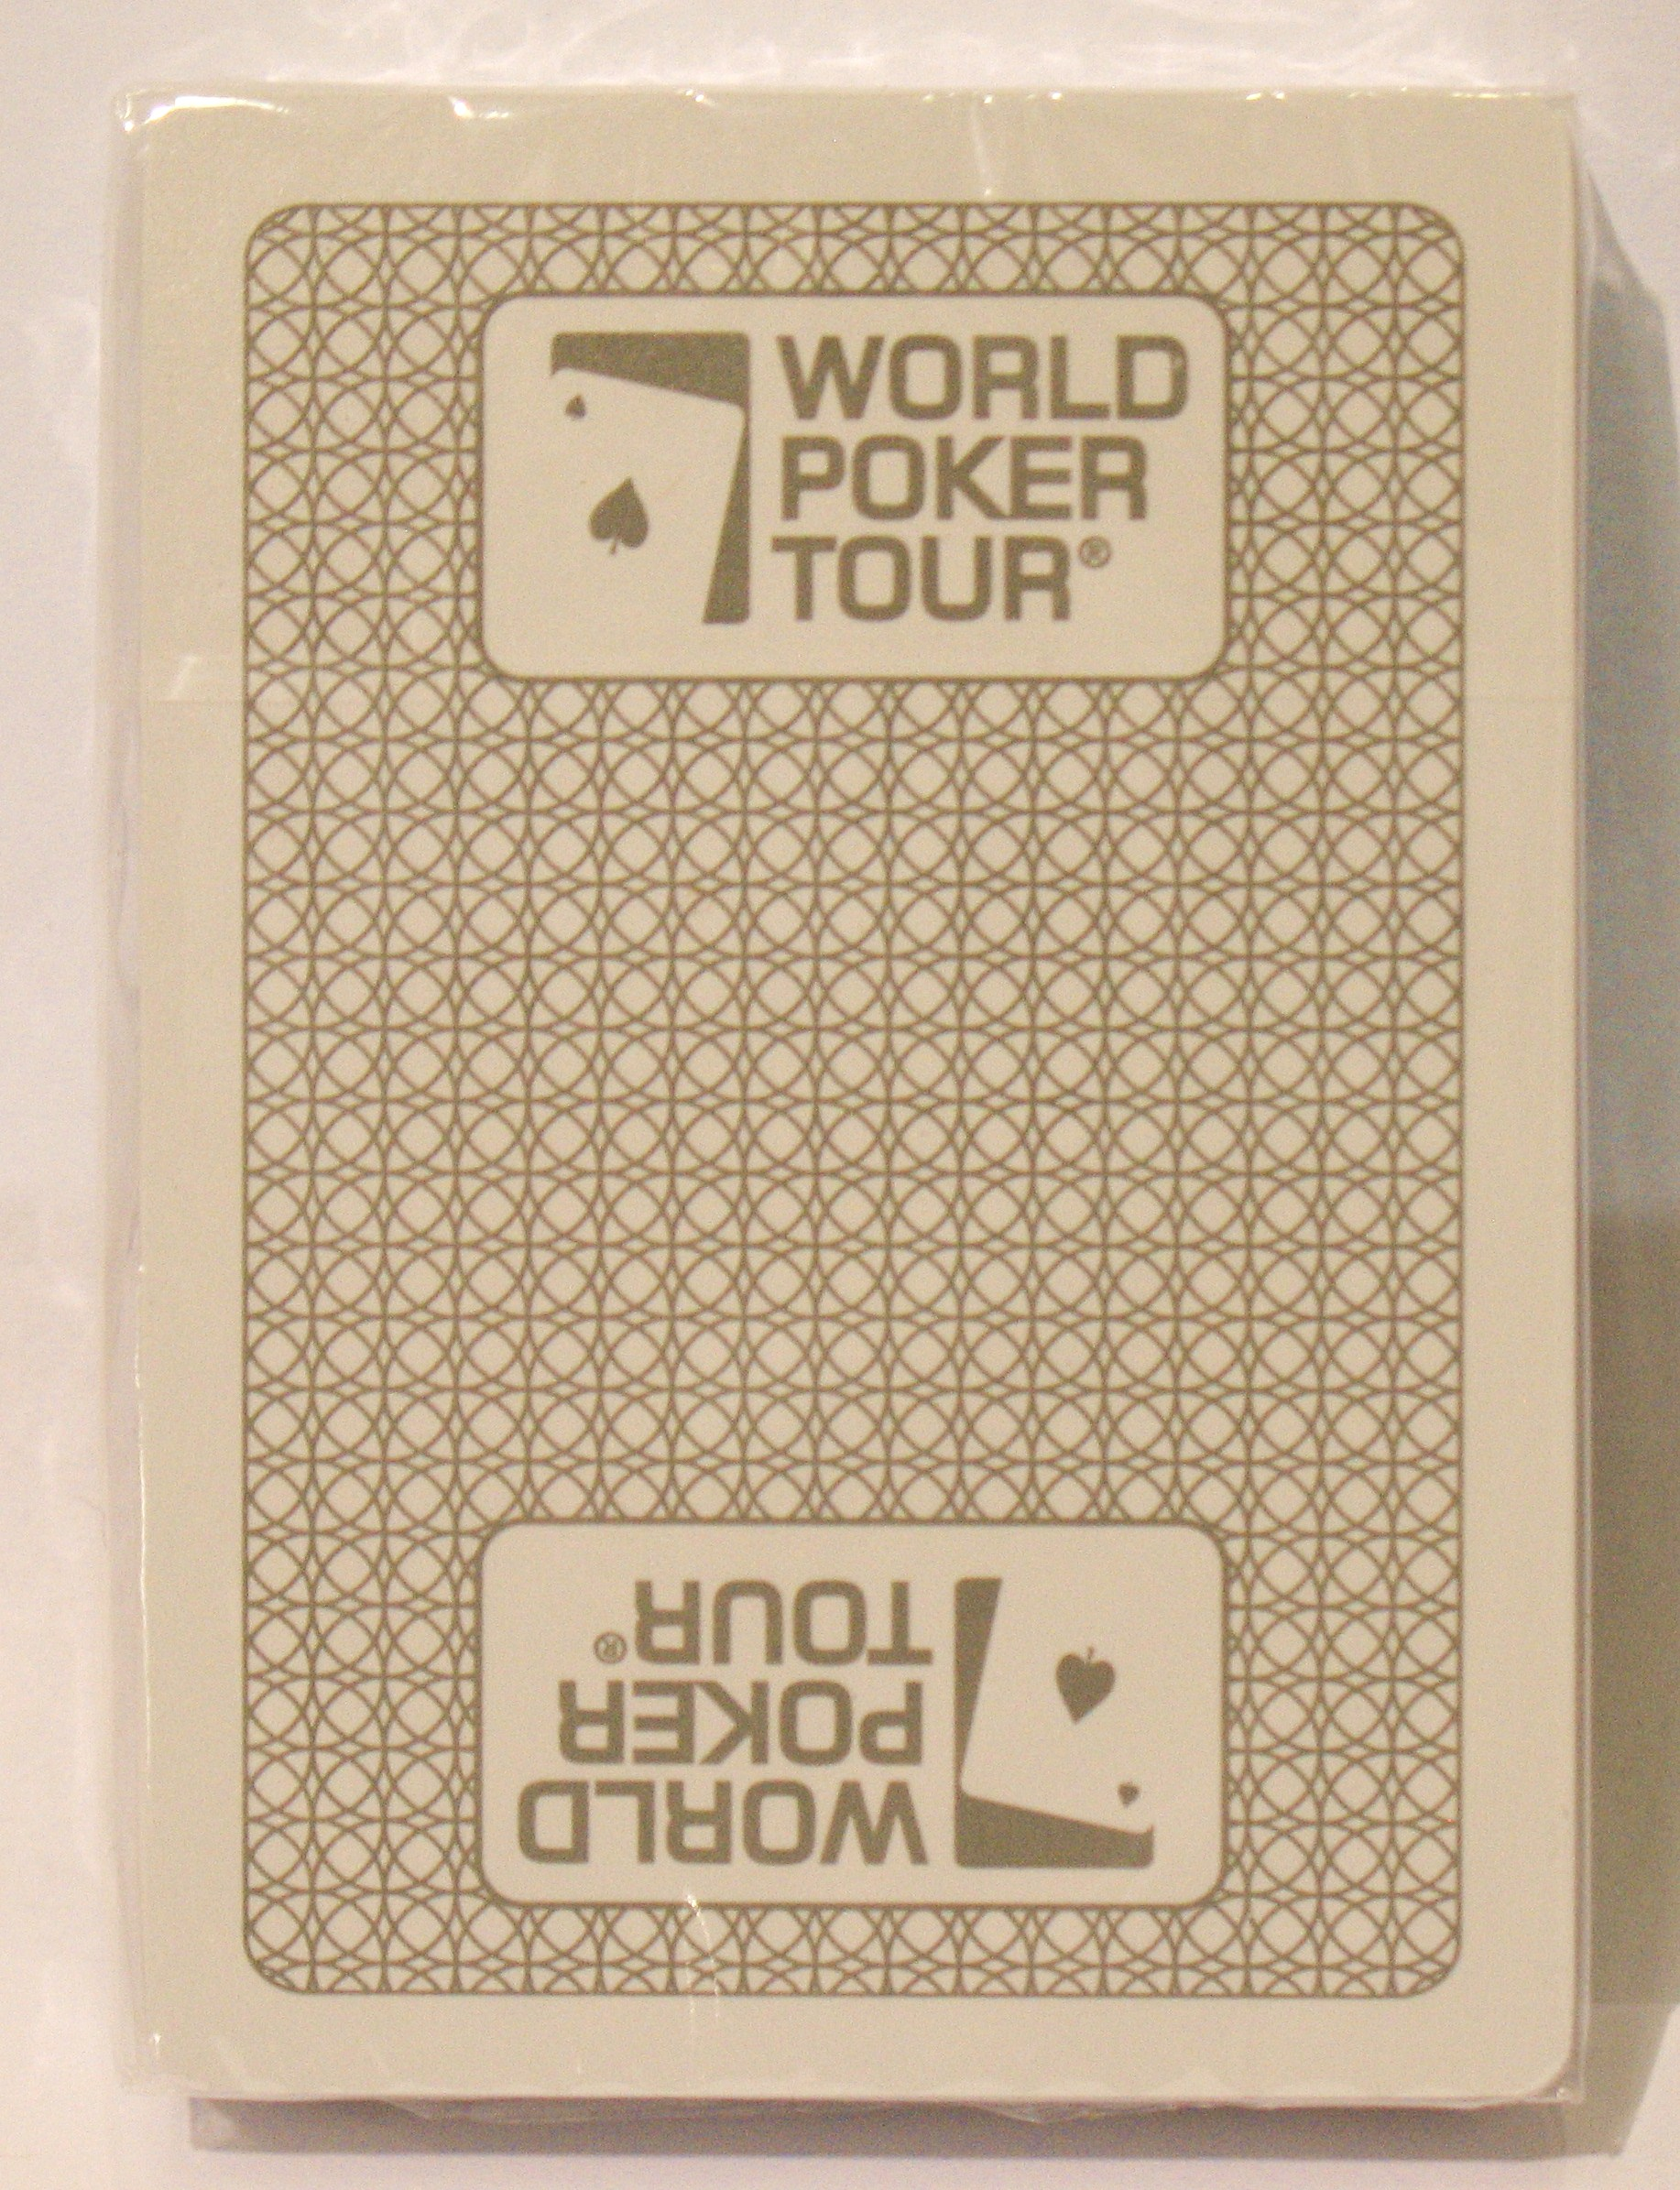 WPT Kem Silver World Poker Tour Deck Playing Cards Poker Size Regular Index